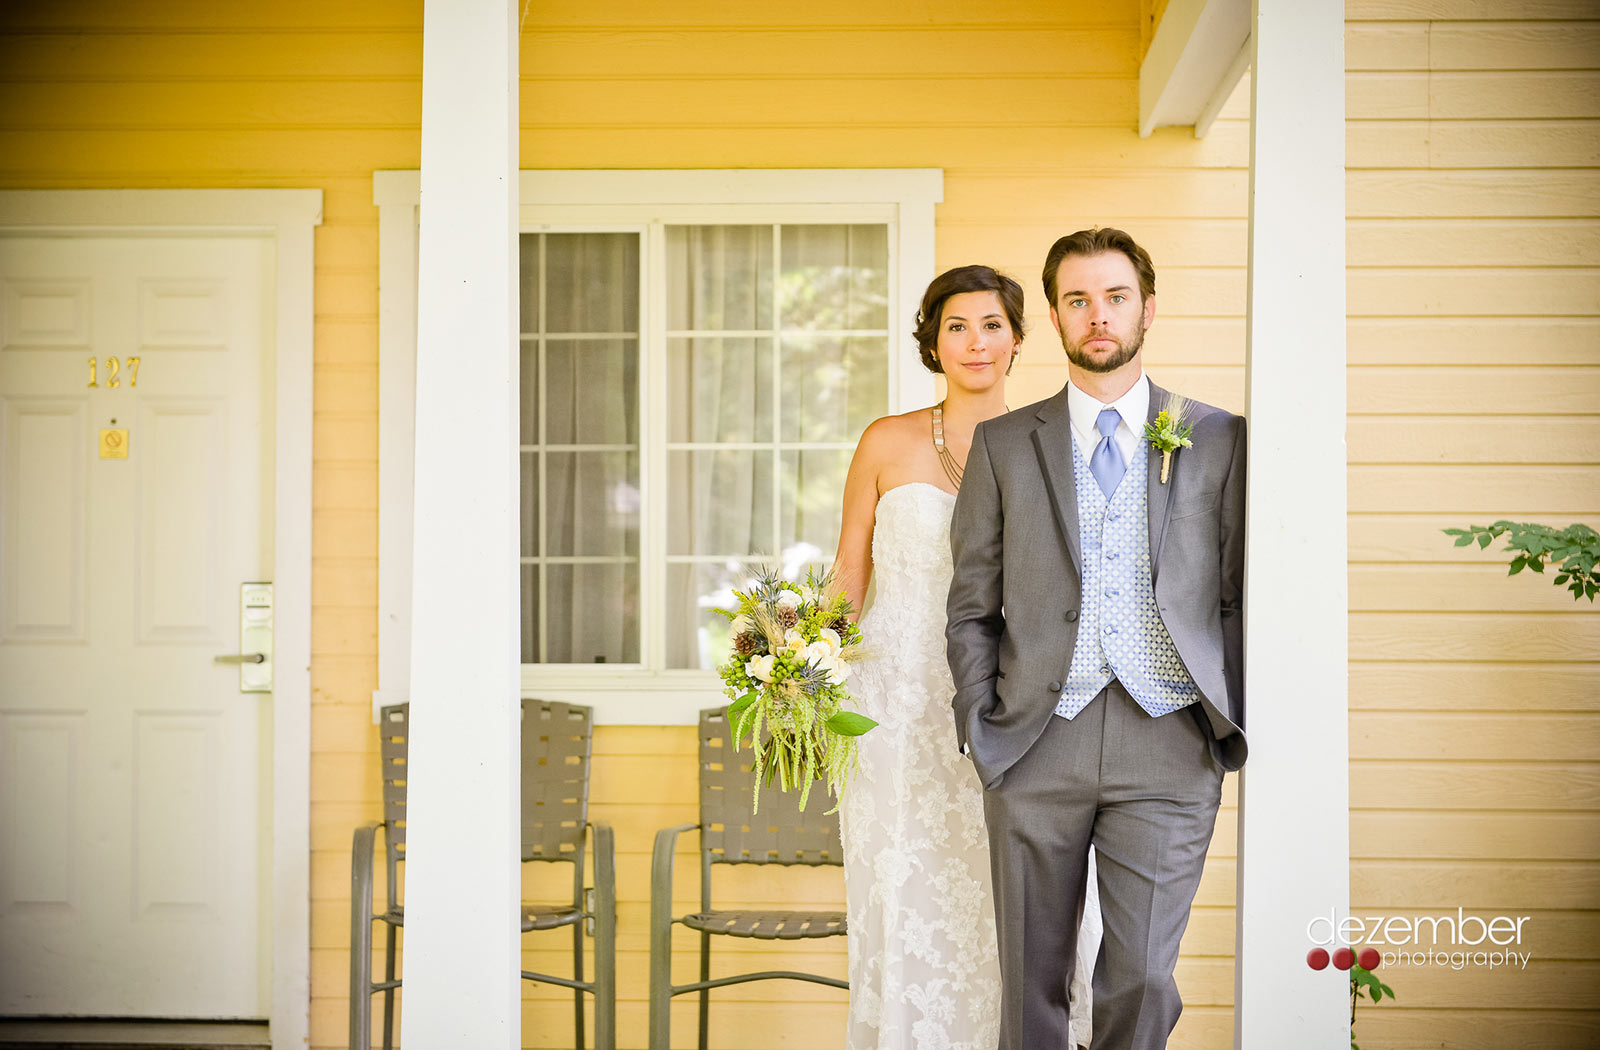 Couple in front of a yellow exterior building at the homestead an ideal Utah wedding venue